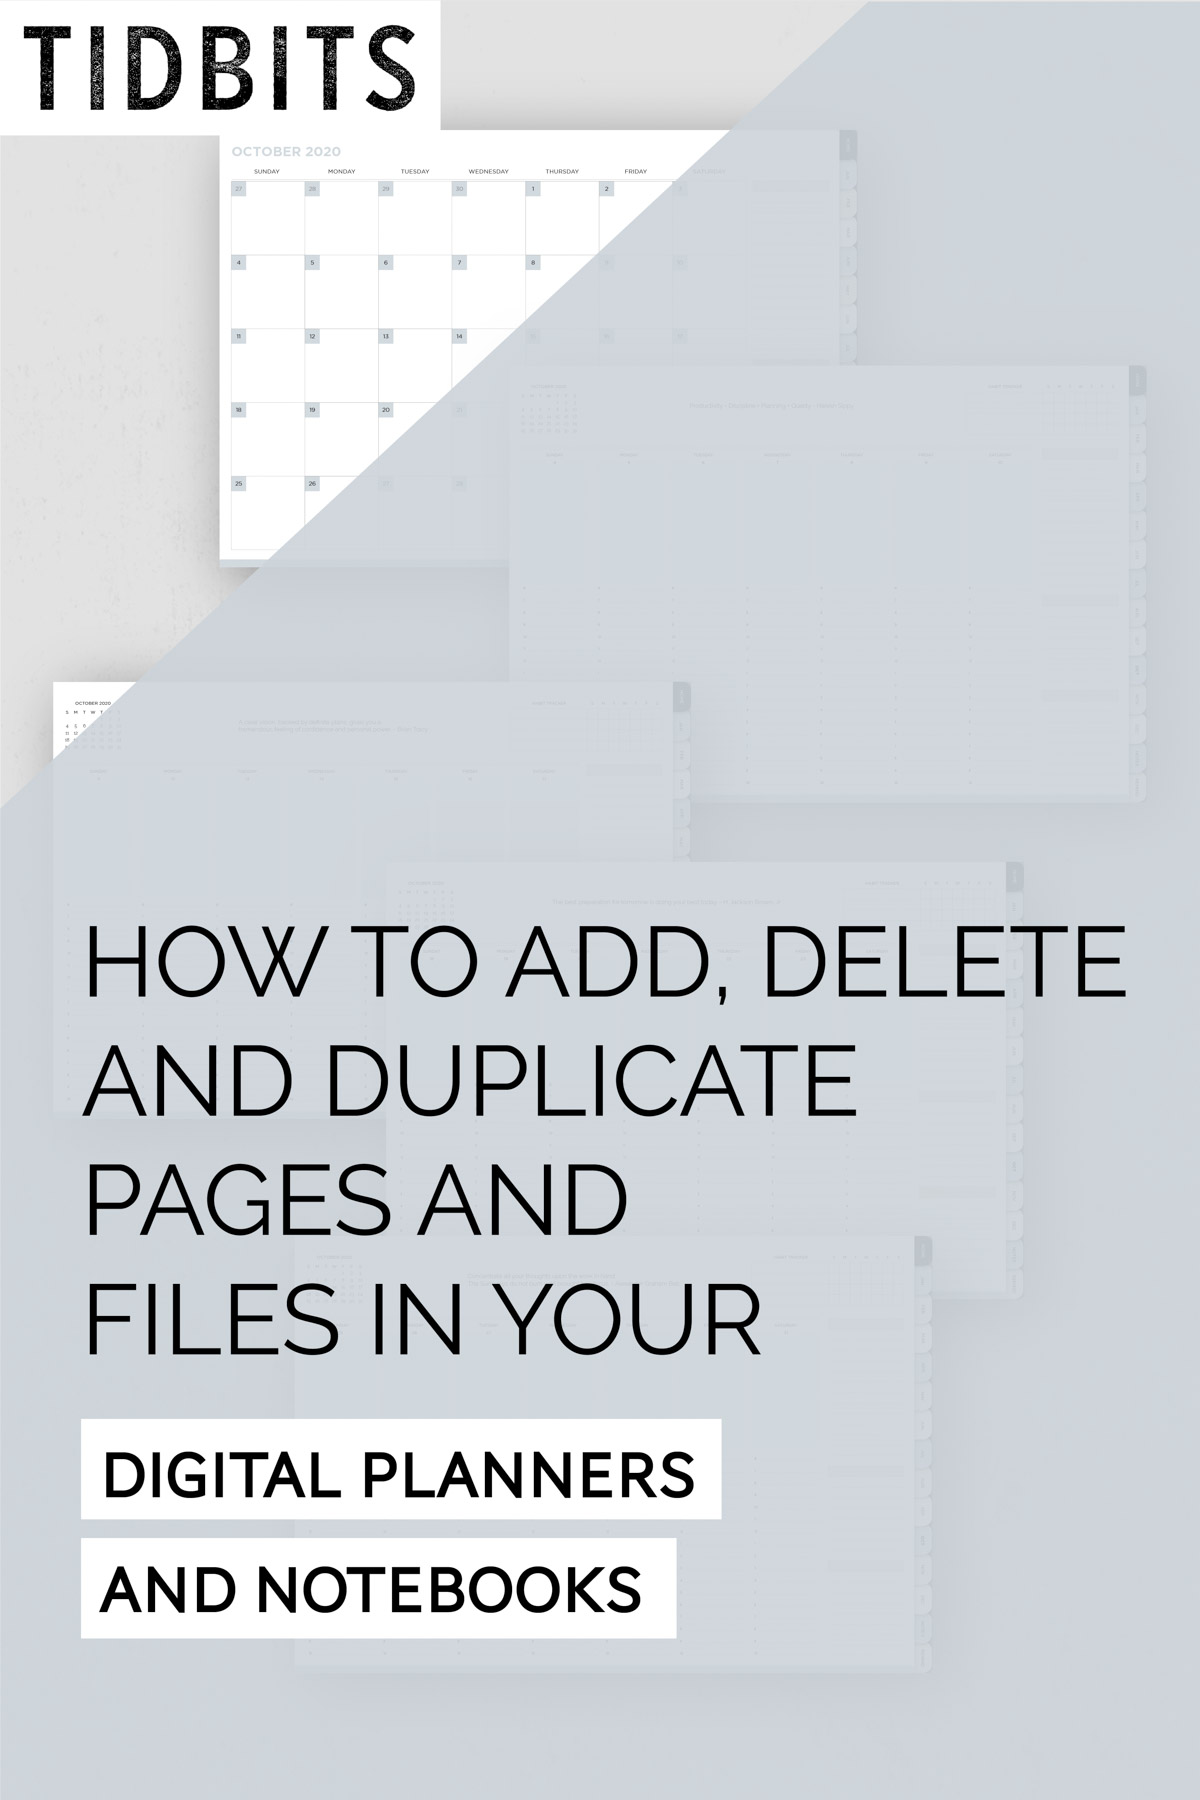 How to add, delete, duplicate pages and files in your digital planners and notebooks